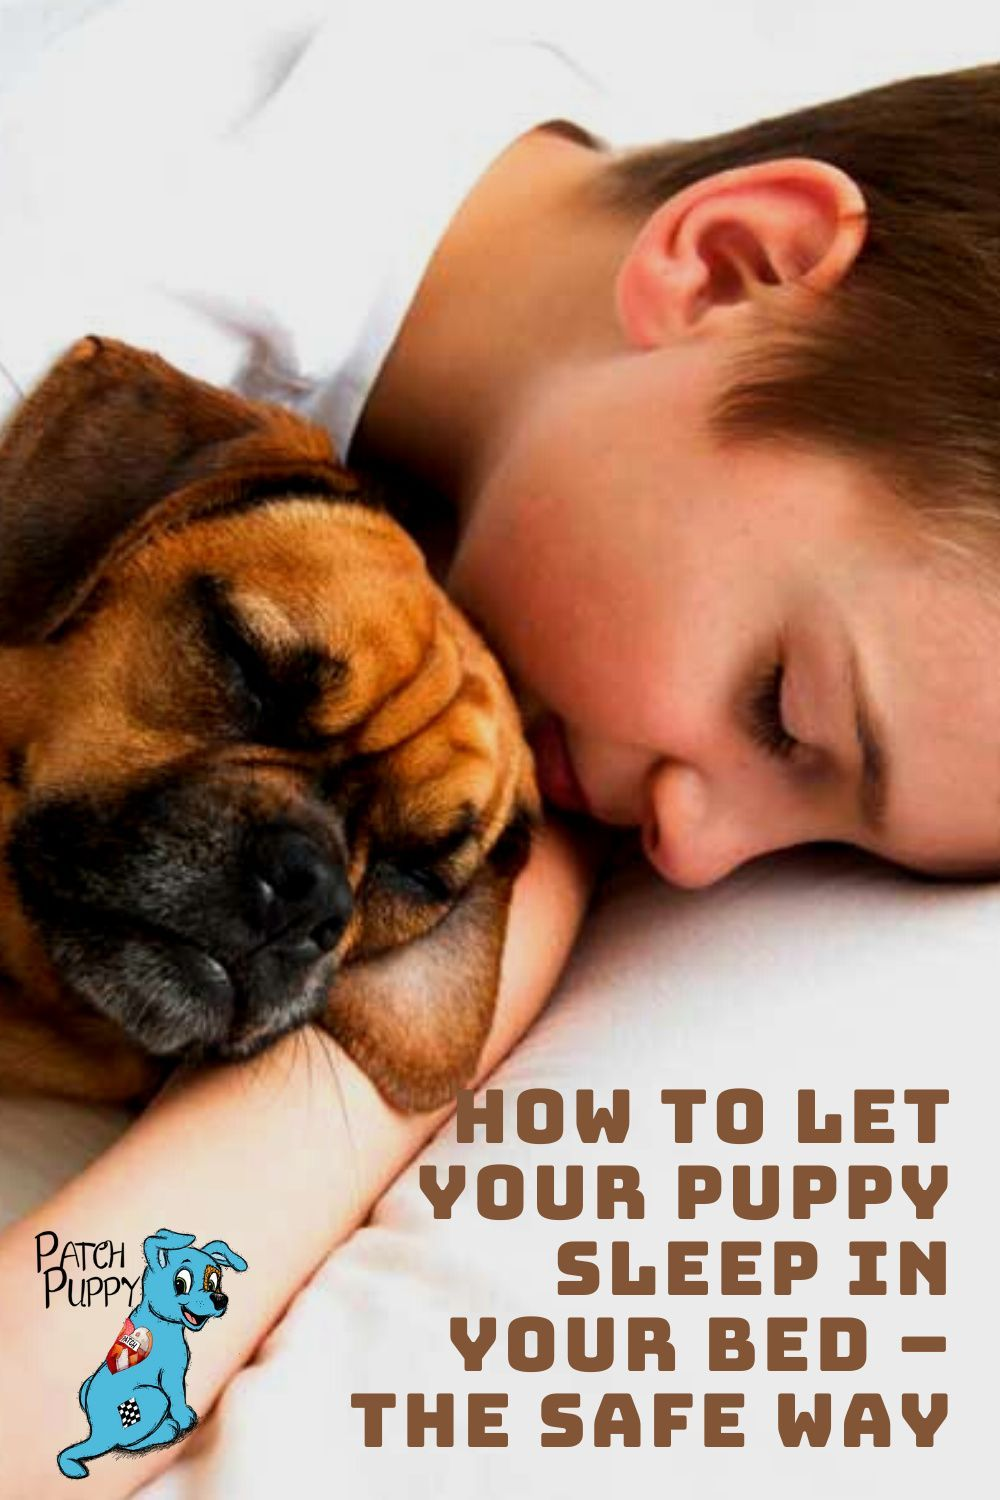 3f28a4c1fdd263288f7cad2d3dd6951c - How Do I Get My Puppy To Sleep In His Bed